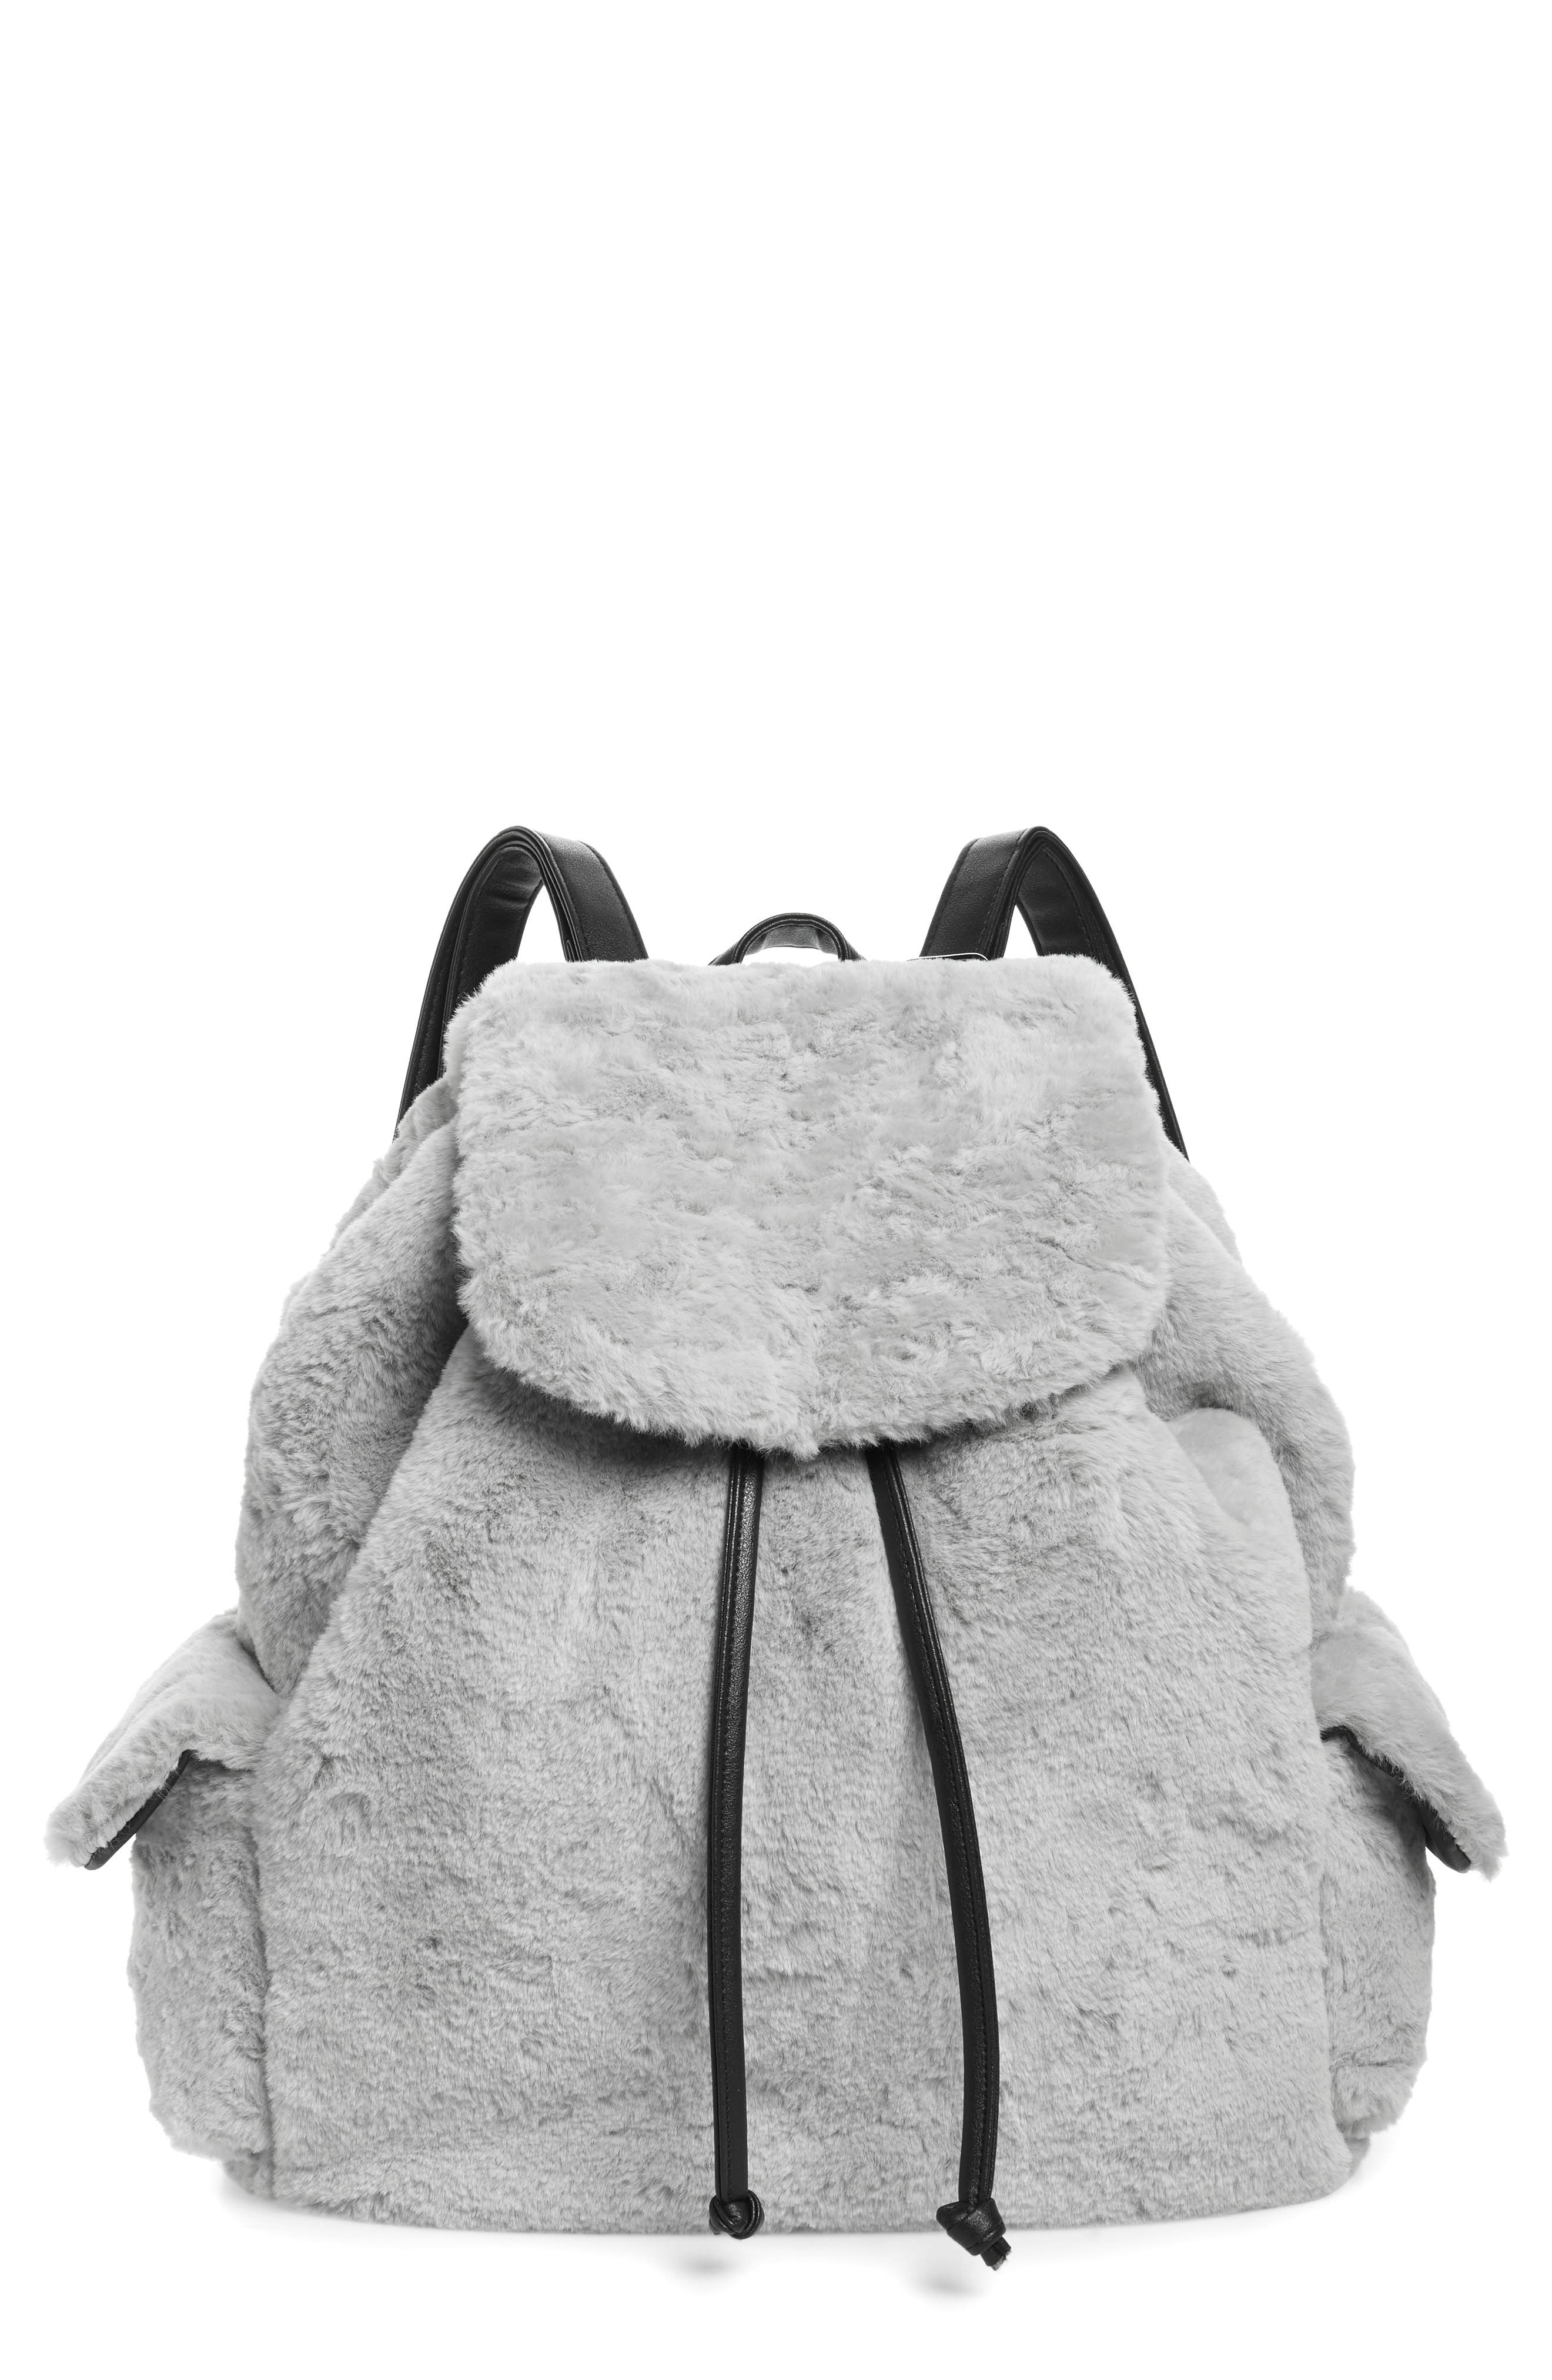 Yoki Bags Faux Fur Oversized Utility Backpack -